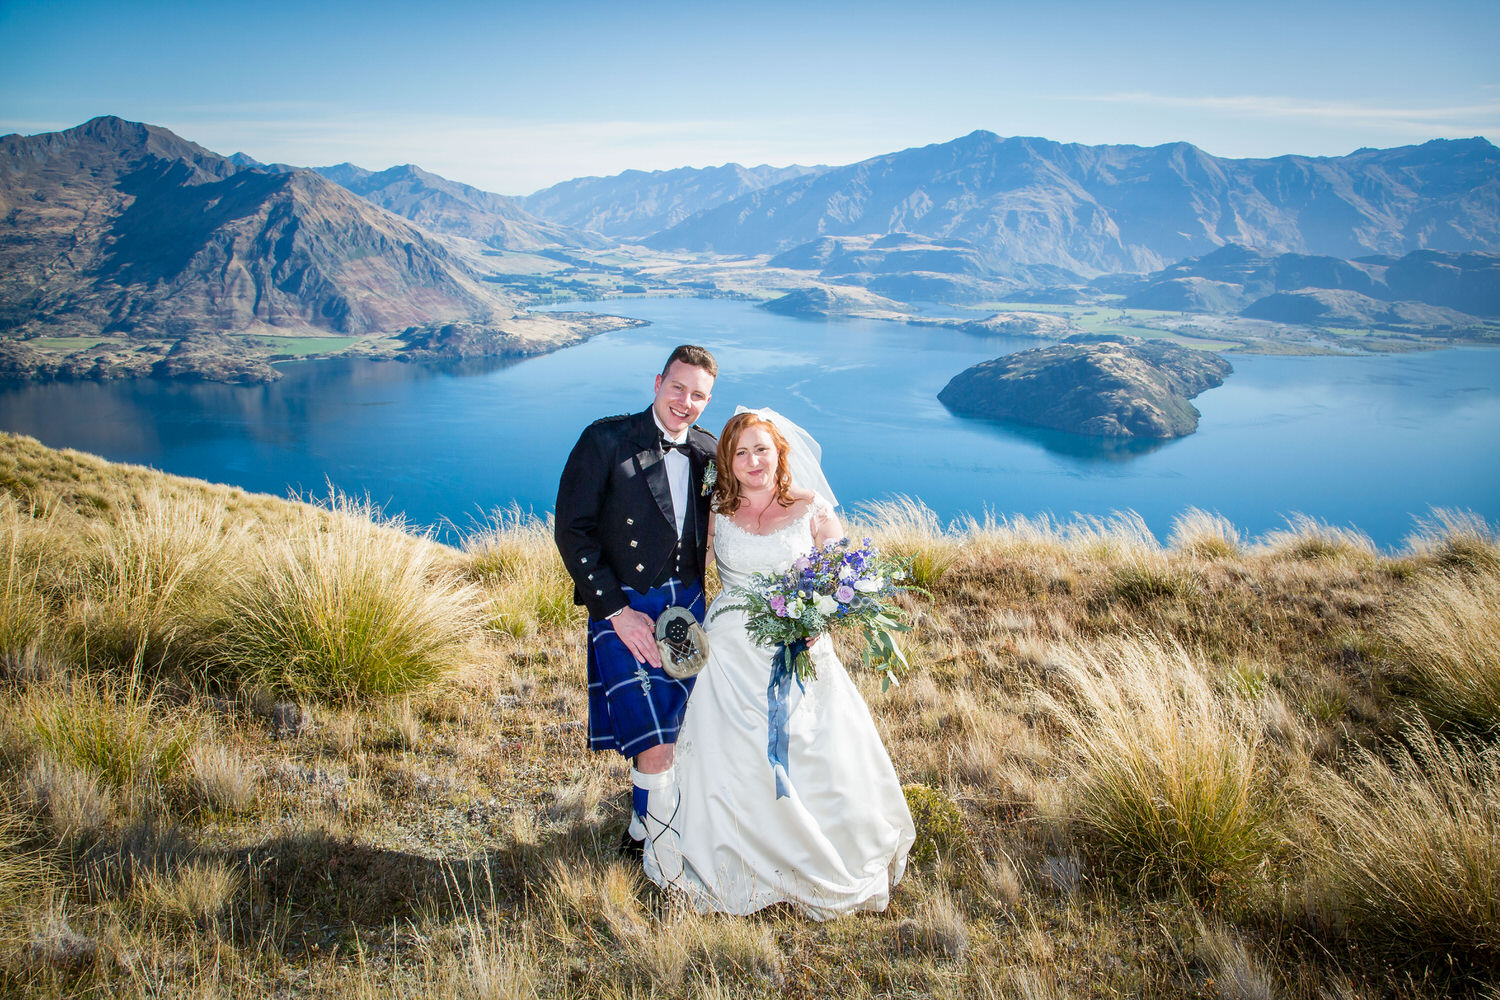 scottish-wedding-wanaka.jpg